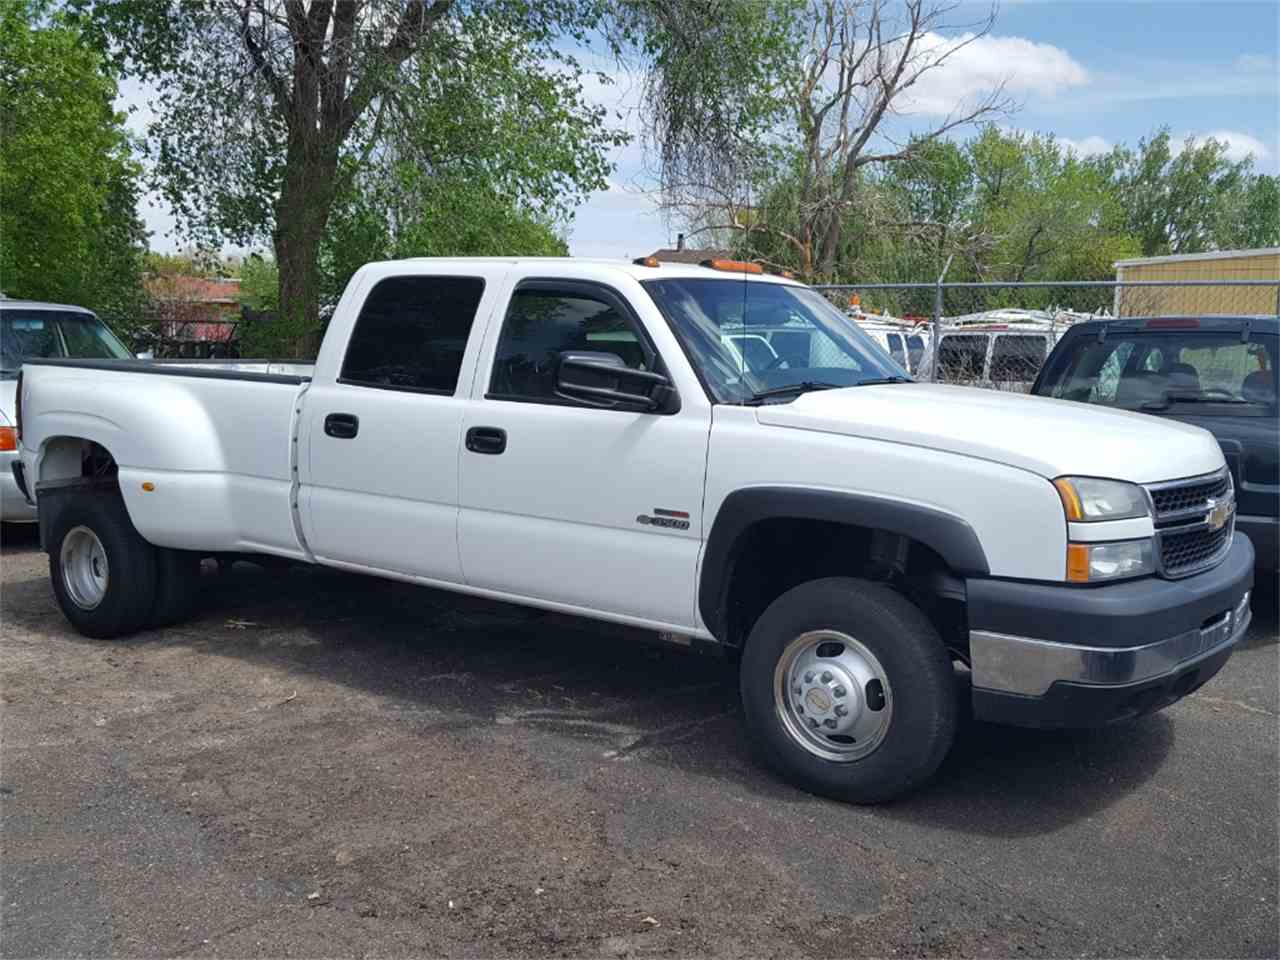 2006 Chevrolet Silverado for Sale - CC-1021645